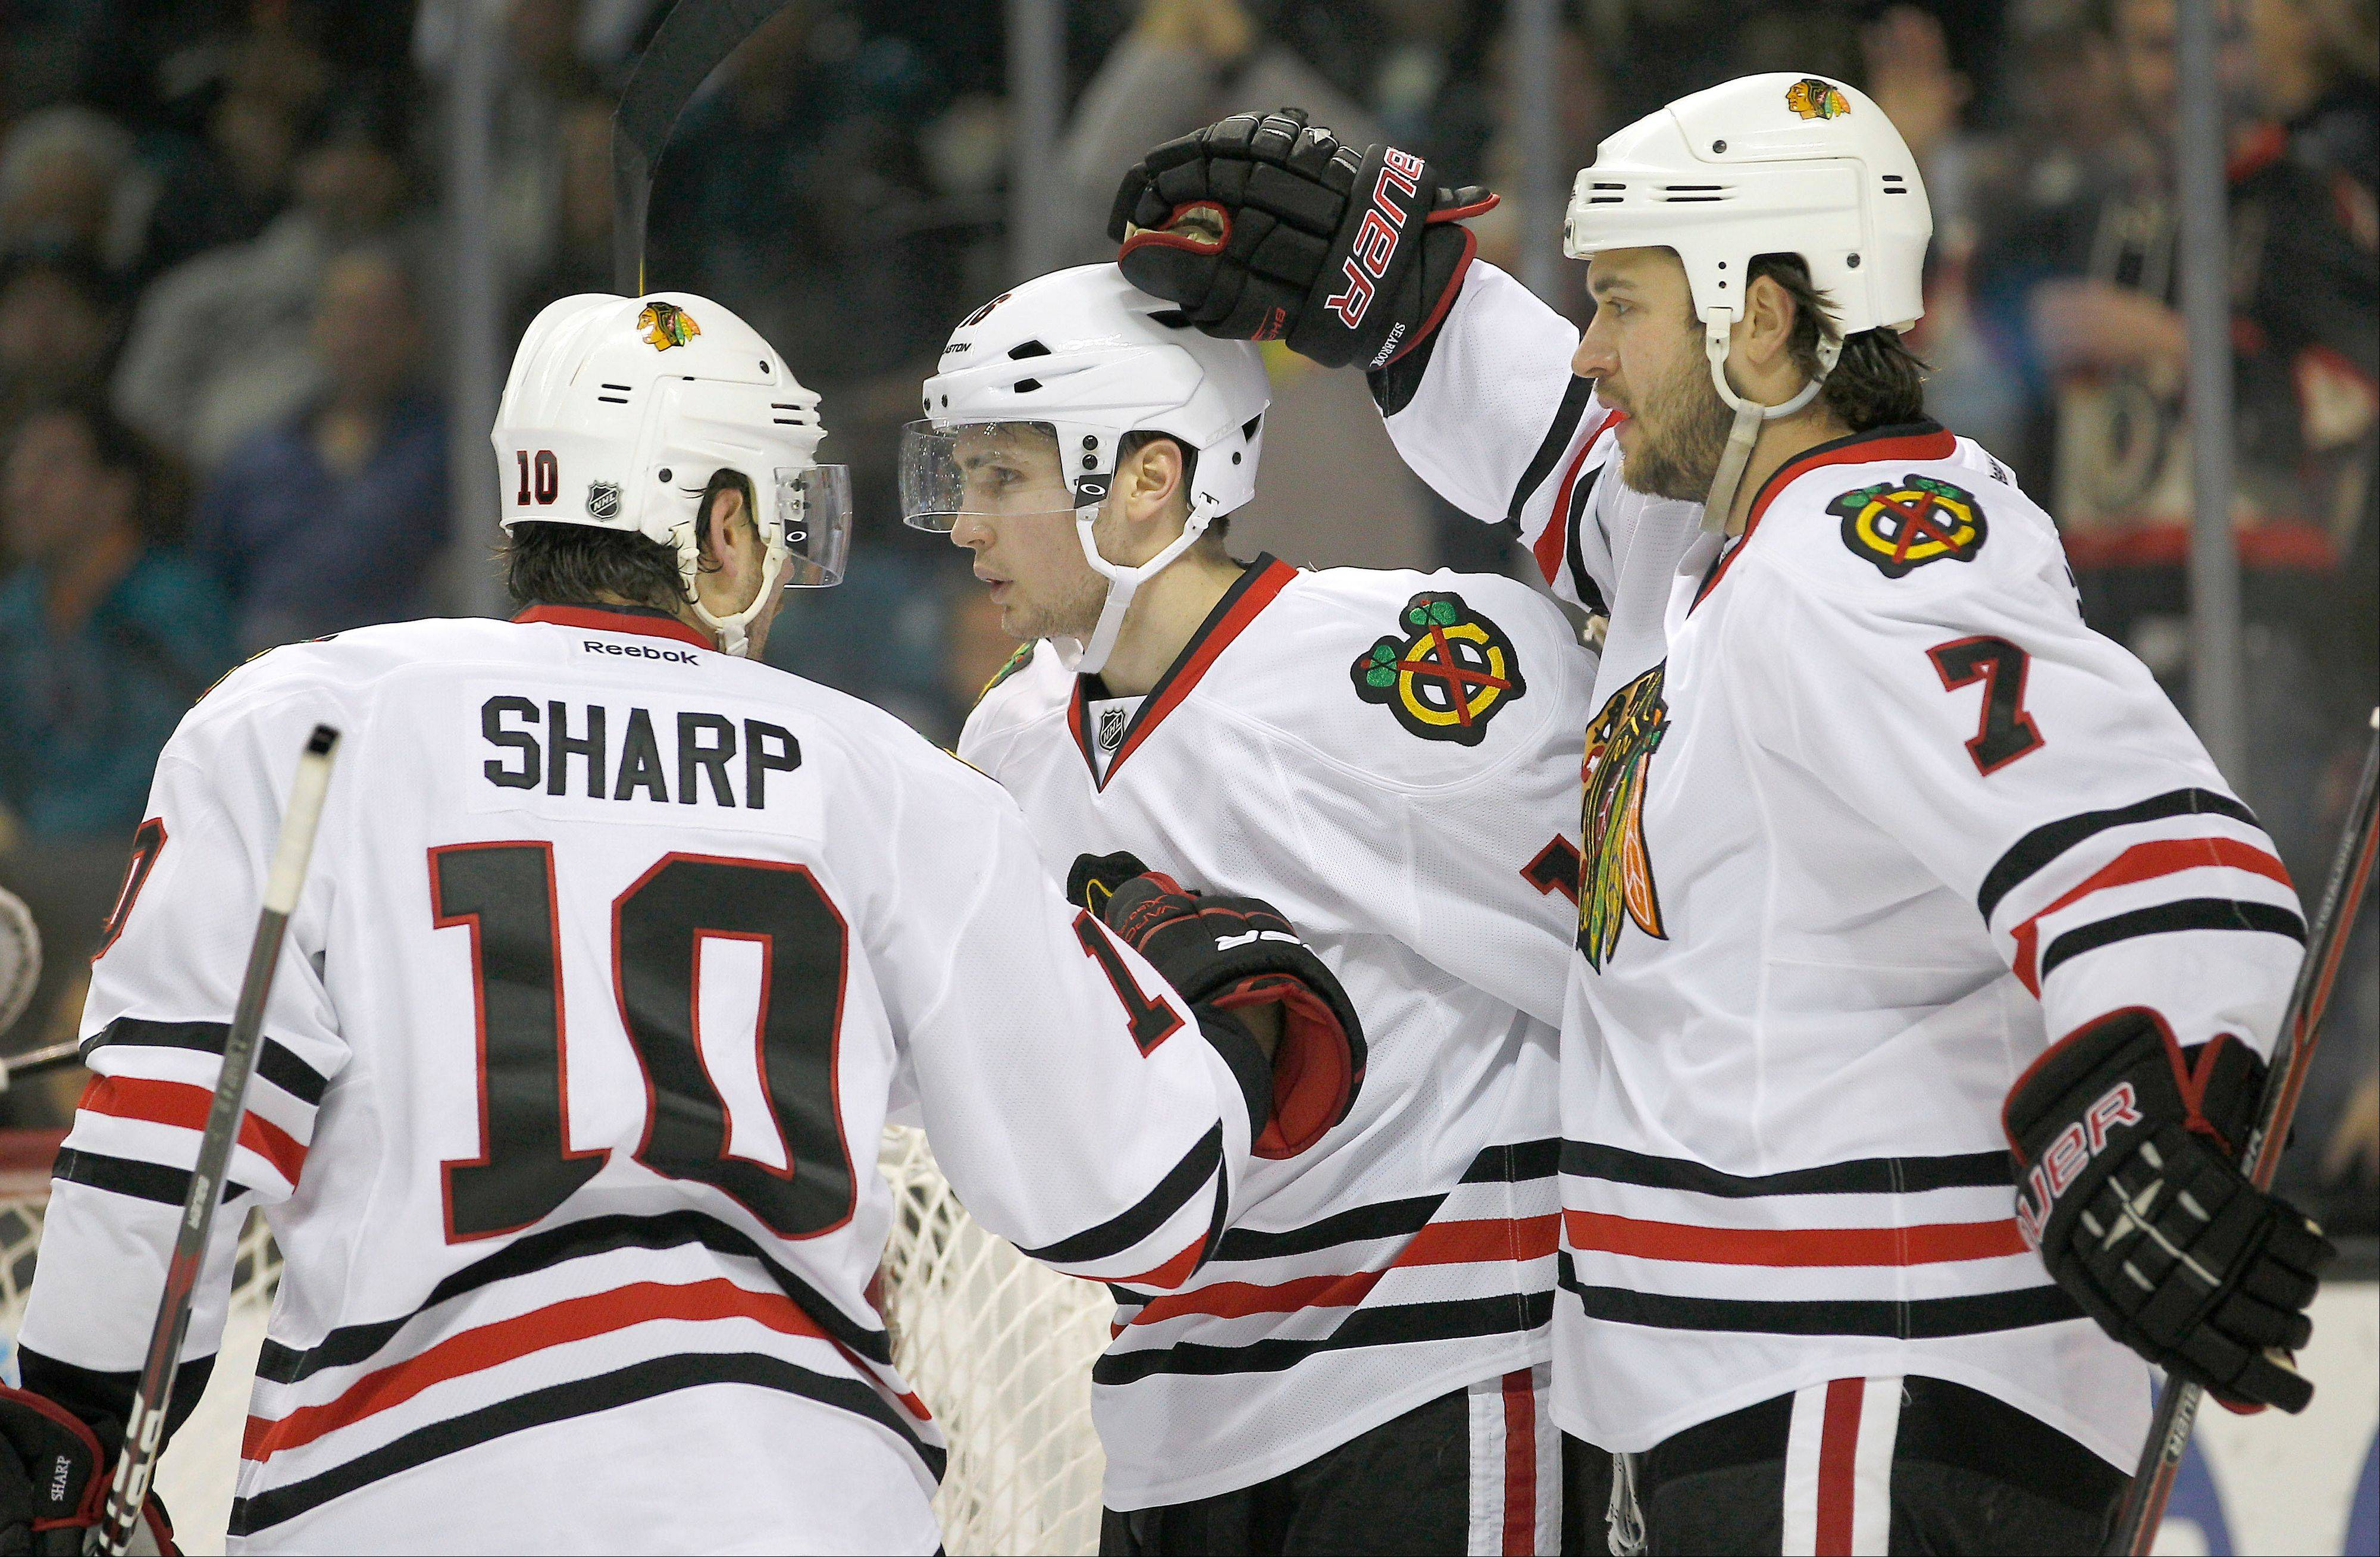 Center Marcus Kruger, middle, is one of three players that left Rockford on Monday to begin preparing for Blackhawks training camp.